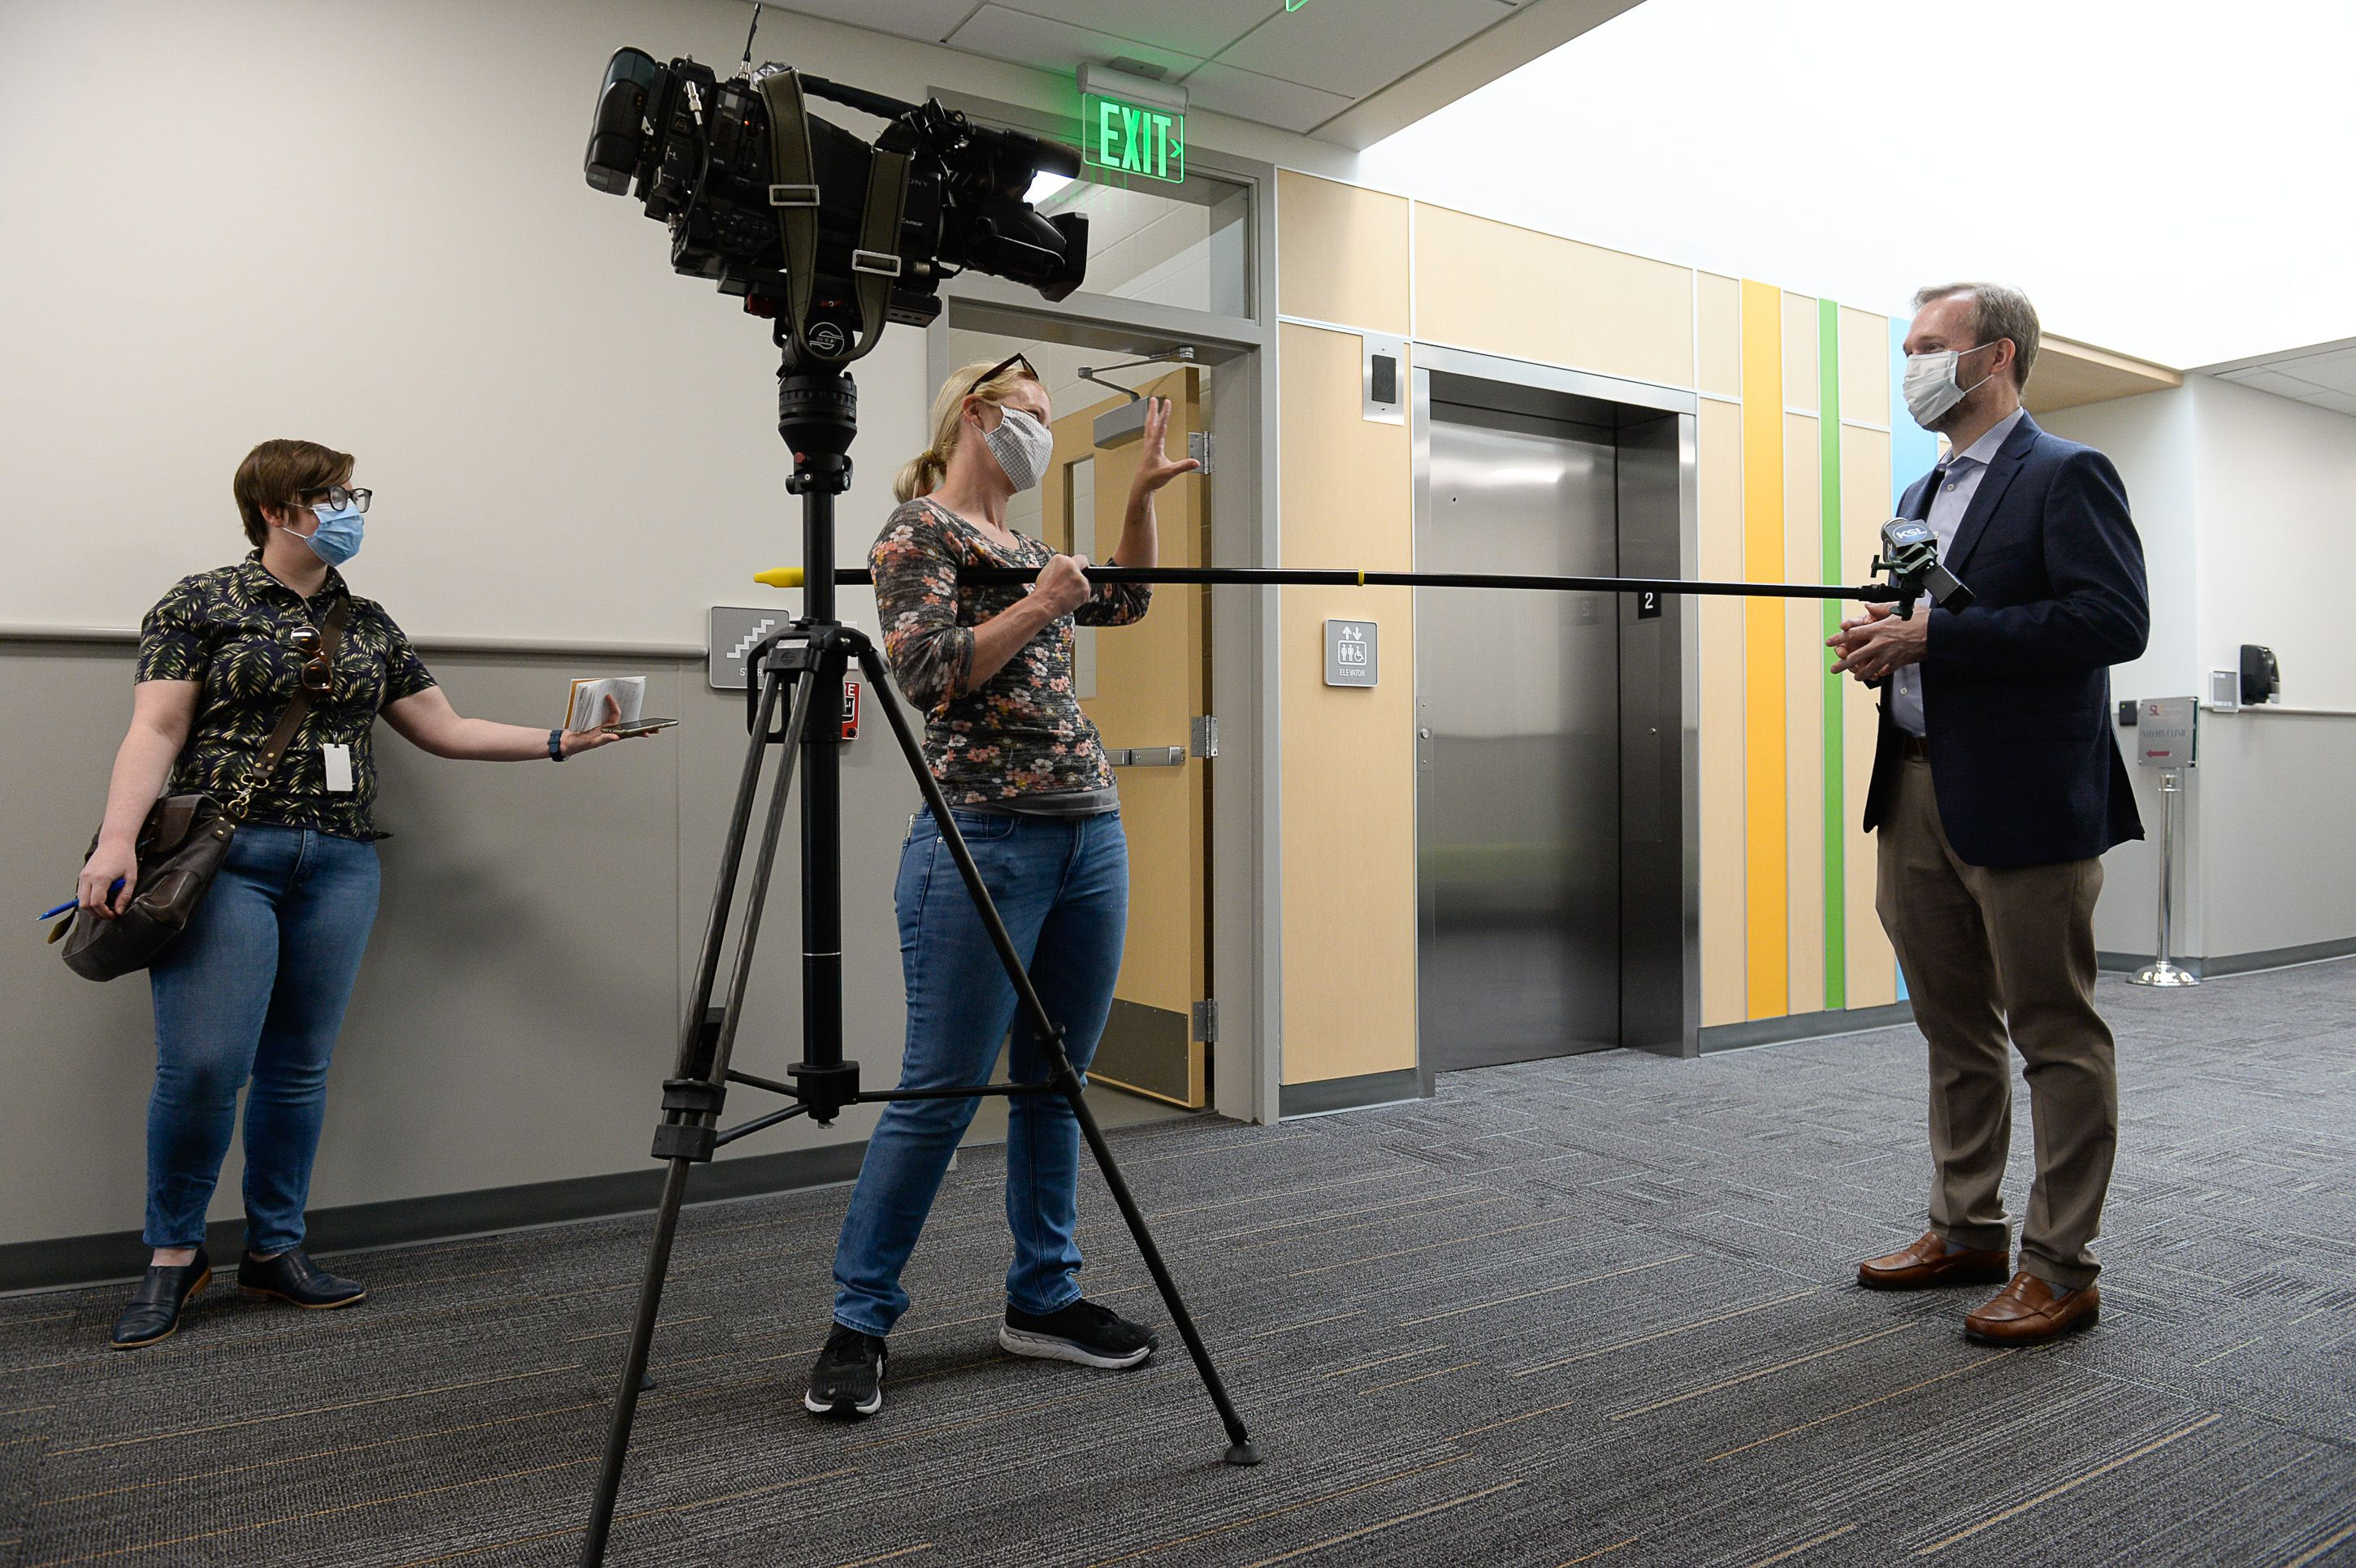 (Francisco Kjolseth     The Salt Lake Tribune) Congressman Ben McAdams, D-Utah, is interviewed by the media as he visits the Salt Lake County Public Health Center on Tuesday, April 28, 2020, to thank employees who are producing vital data about the source of the county's COVID-19 infections and how it may have spread among county residents. As of last week, the county had reached at least 10,000 people who have had contact with one of the 1,900 confirmed coronavirus cases.